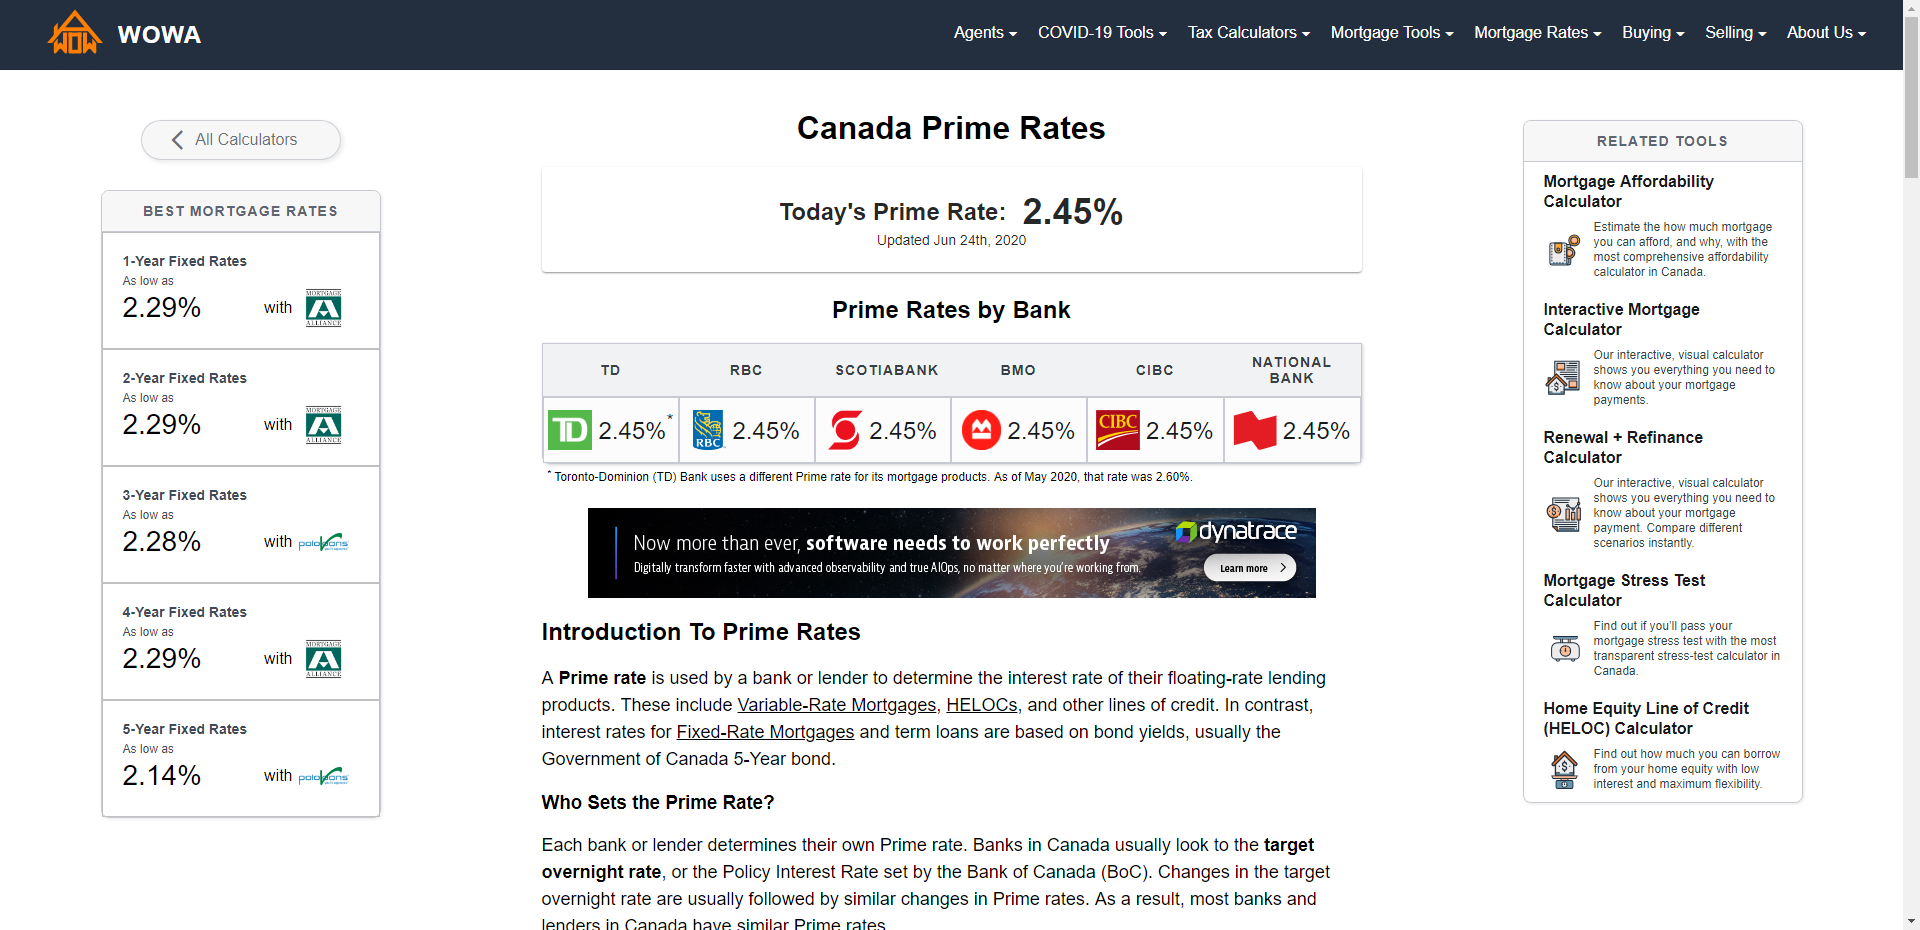 Canada Prime Rate History (1935 - August 2020)